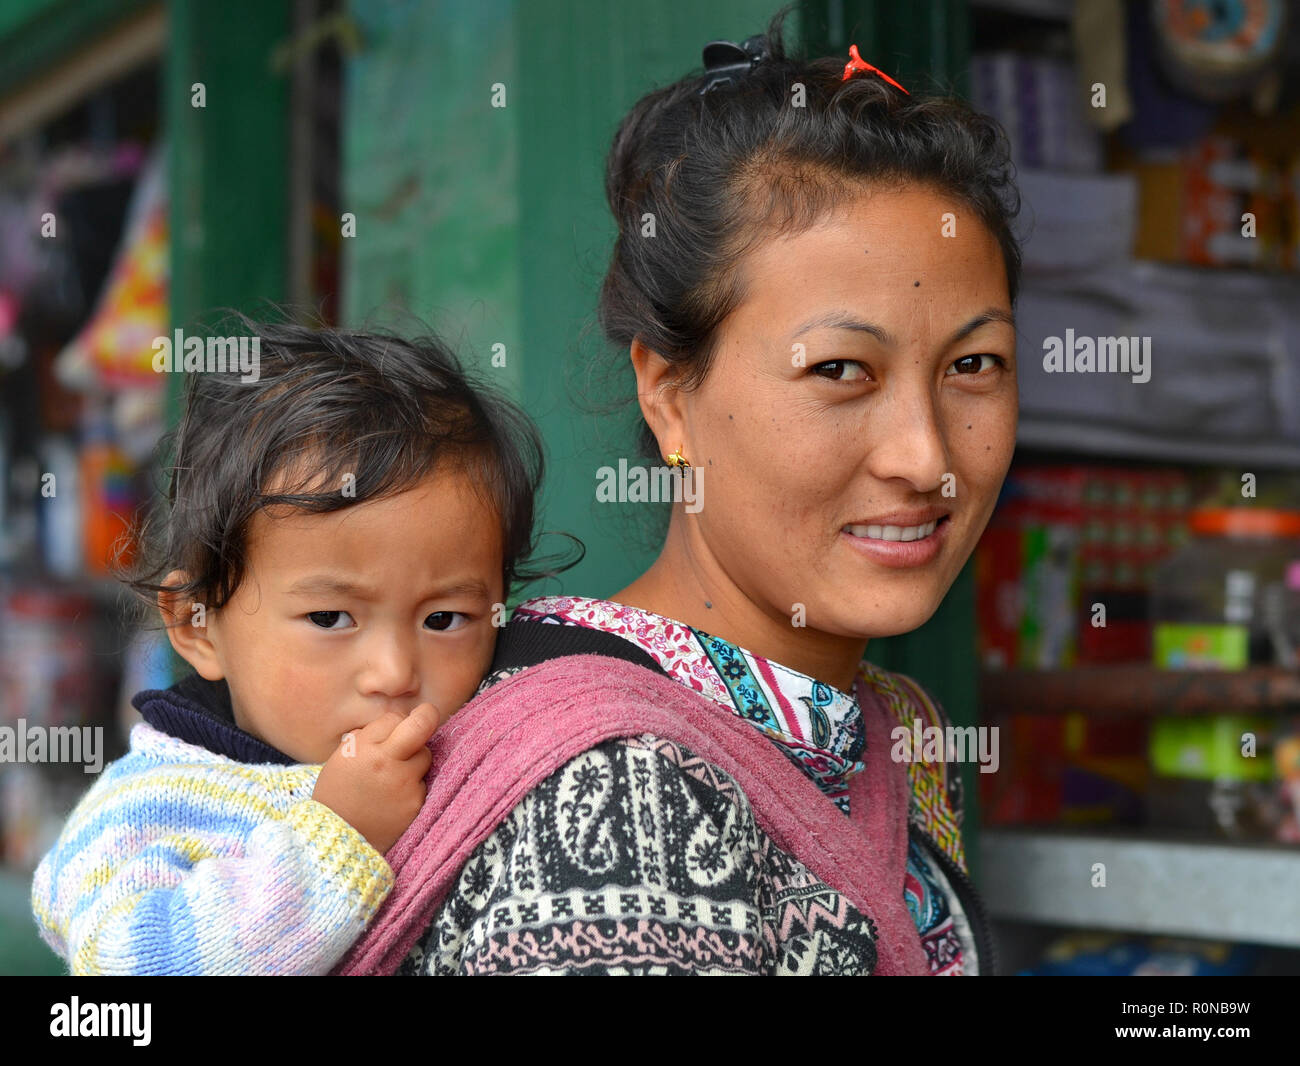 Young Northeast Indian Monpa hill-tribe woman carries her toddler boy in a traditional baby sling on her back. Stock Photo